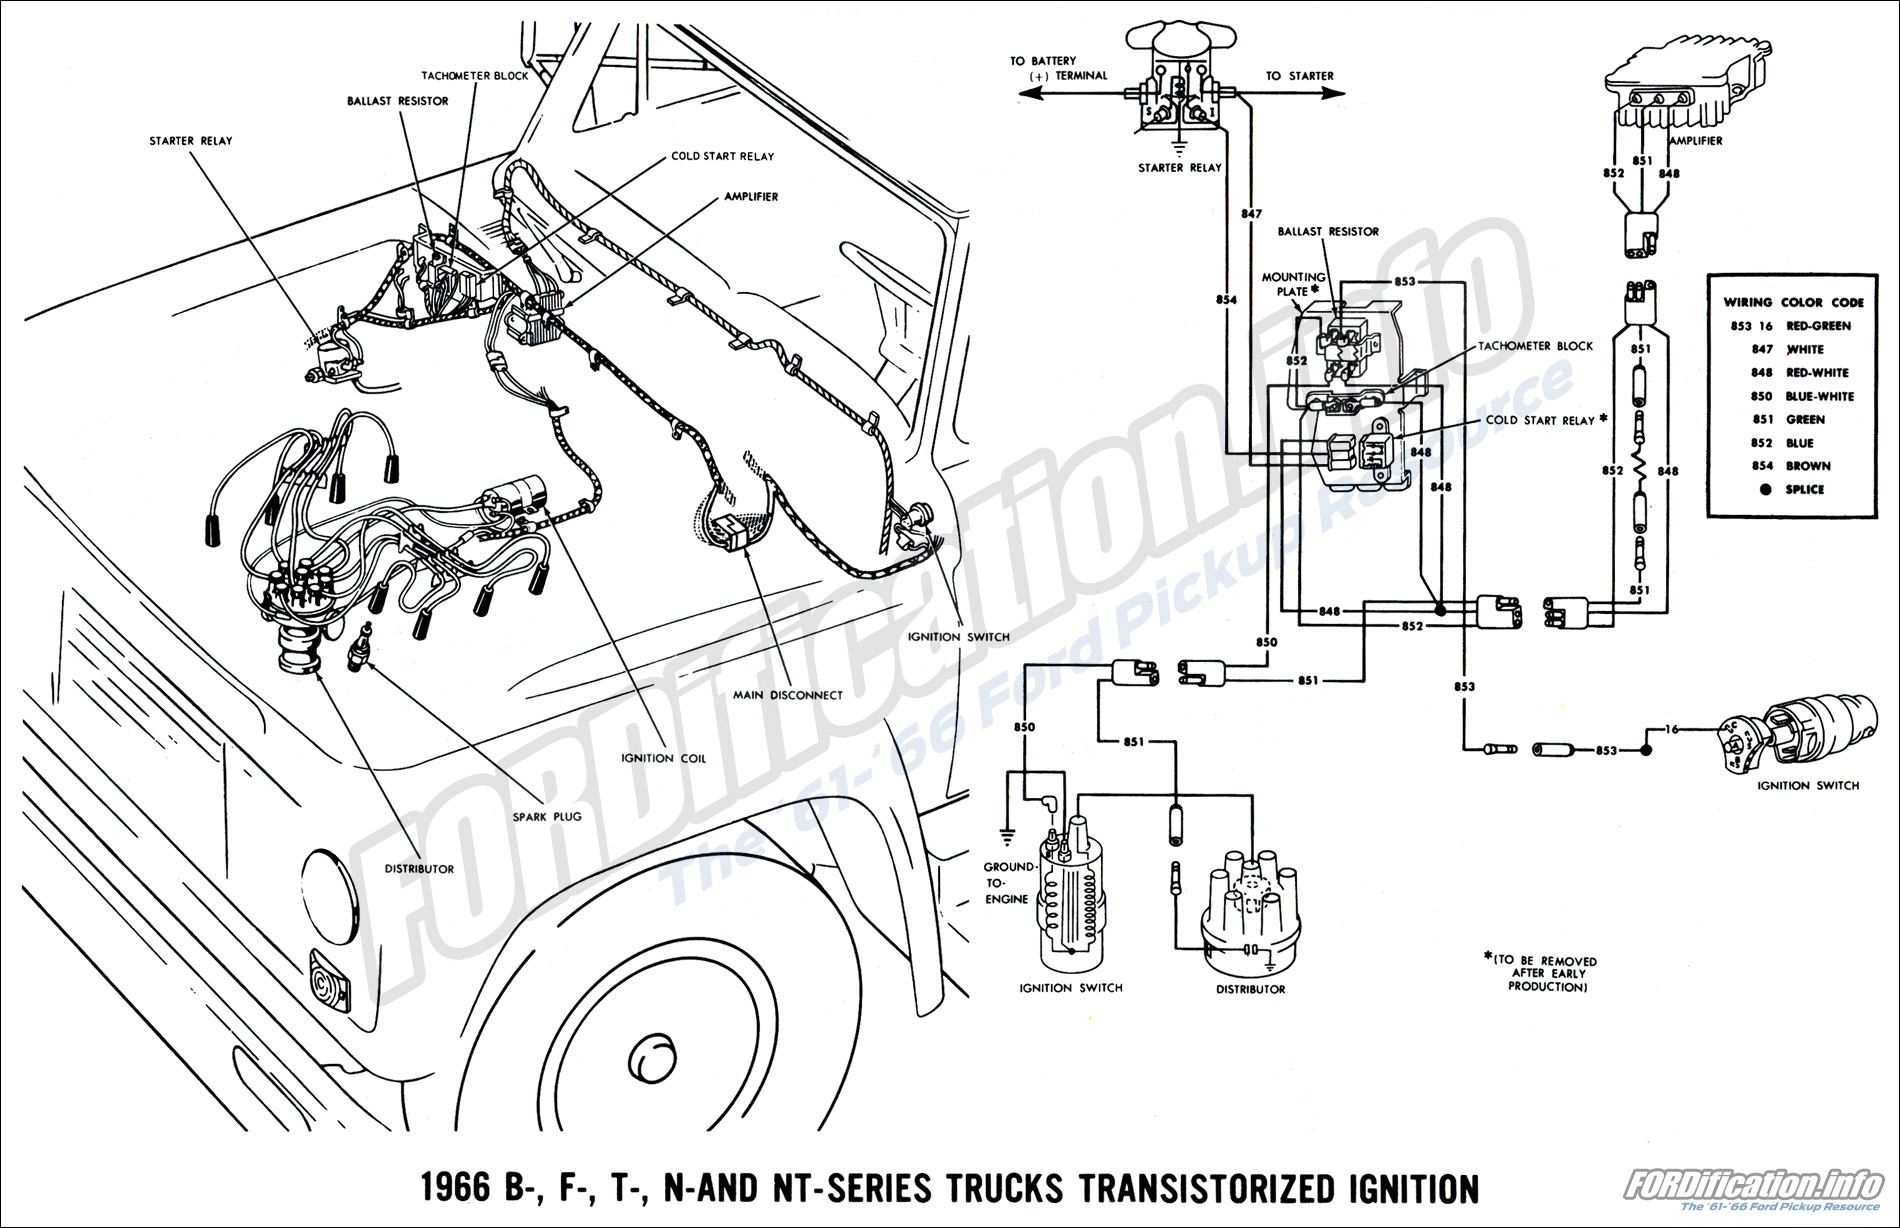 [ZTBE_9966]  1966 Ford Truck Wiring Diagrams - FORDification.info - The '61-'66 Ford  Pickup Resource | 1966 Ford Truck Wiring Diagram |  | FORDification.info